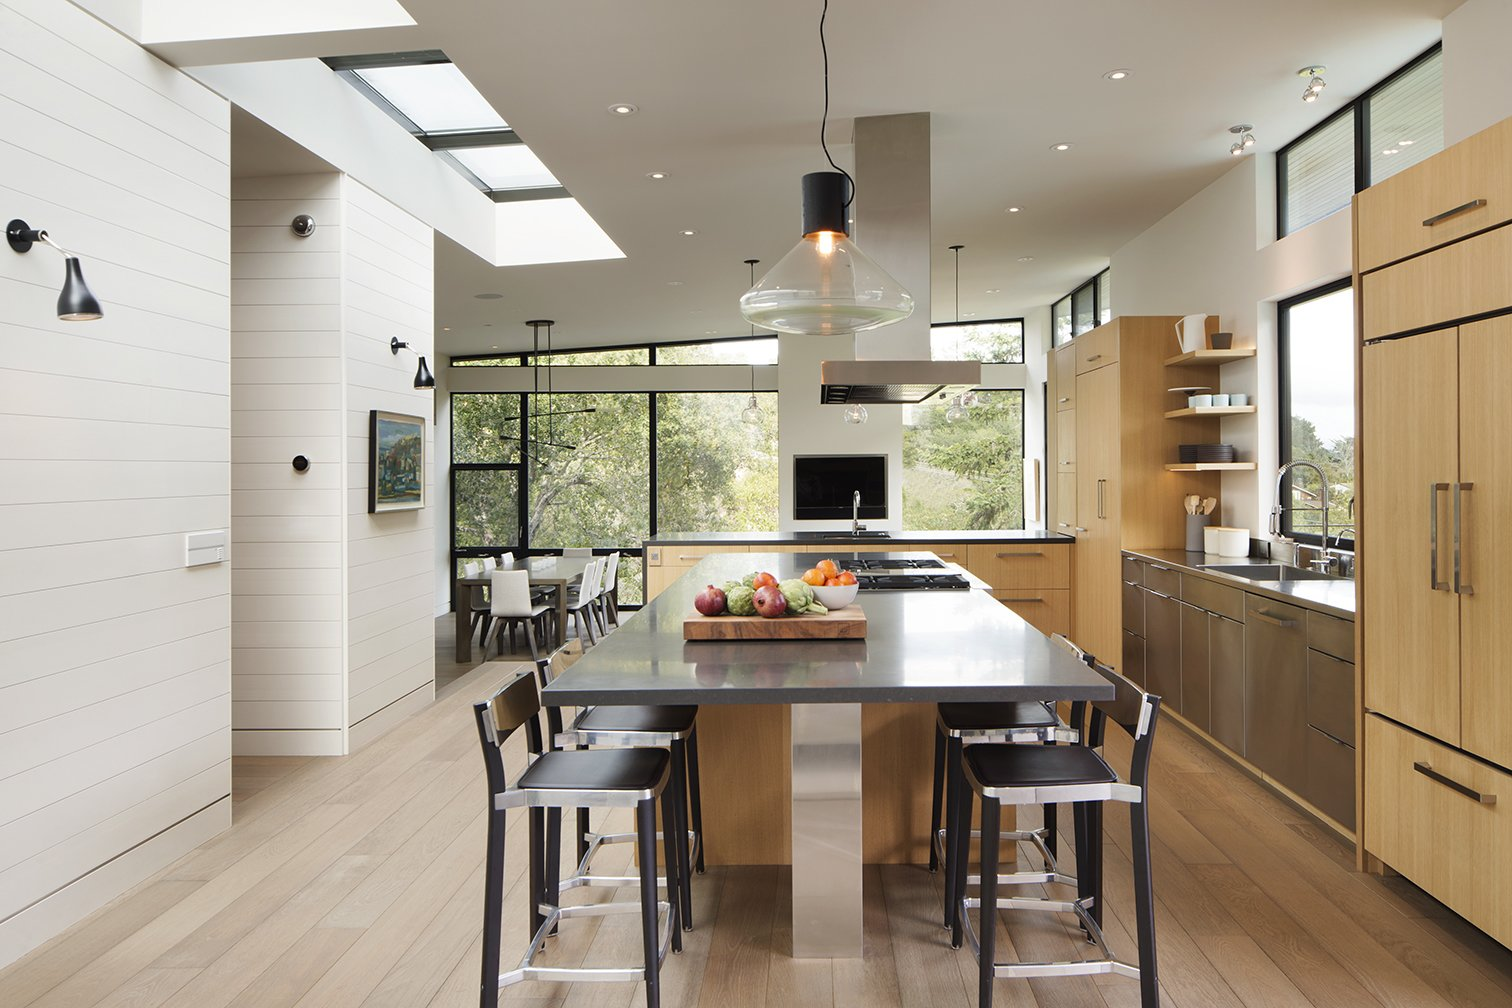 The home includes an eat in kitchen as well as distinct sunken dining area jpg